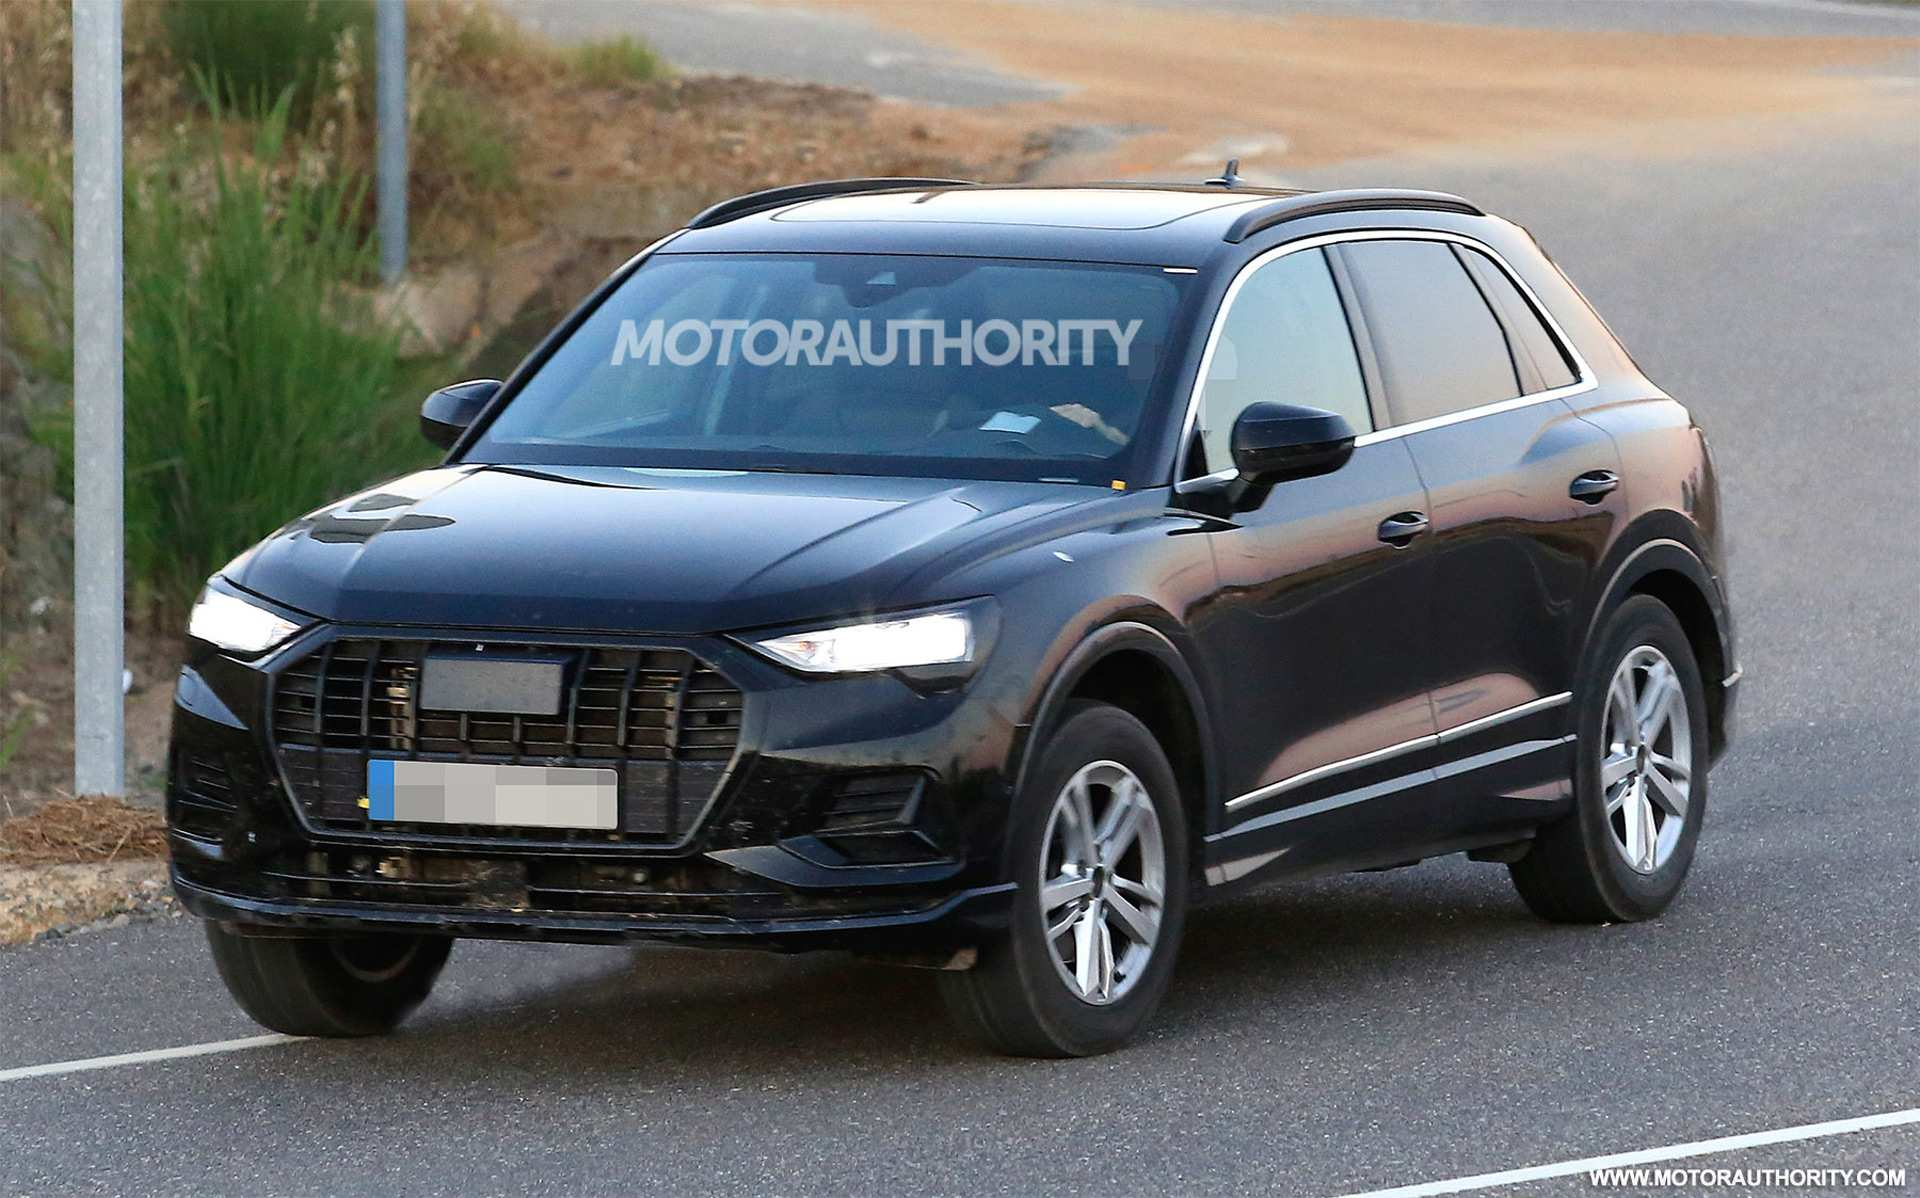 49 All New Audi Q3 2020 Release